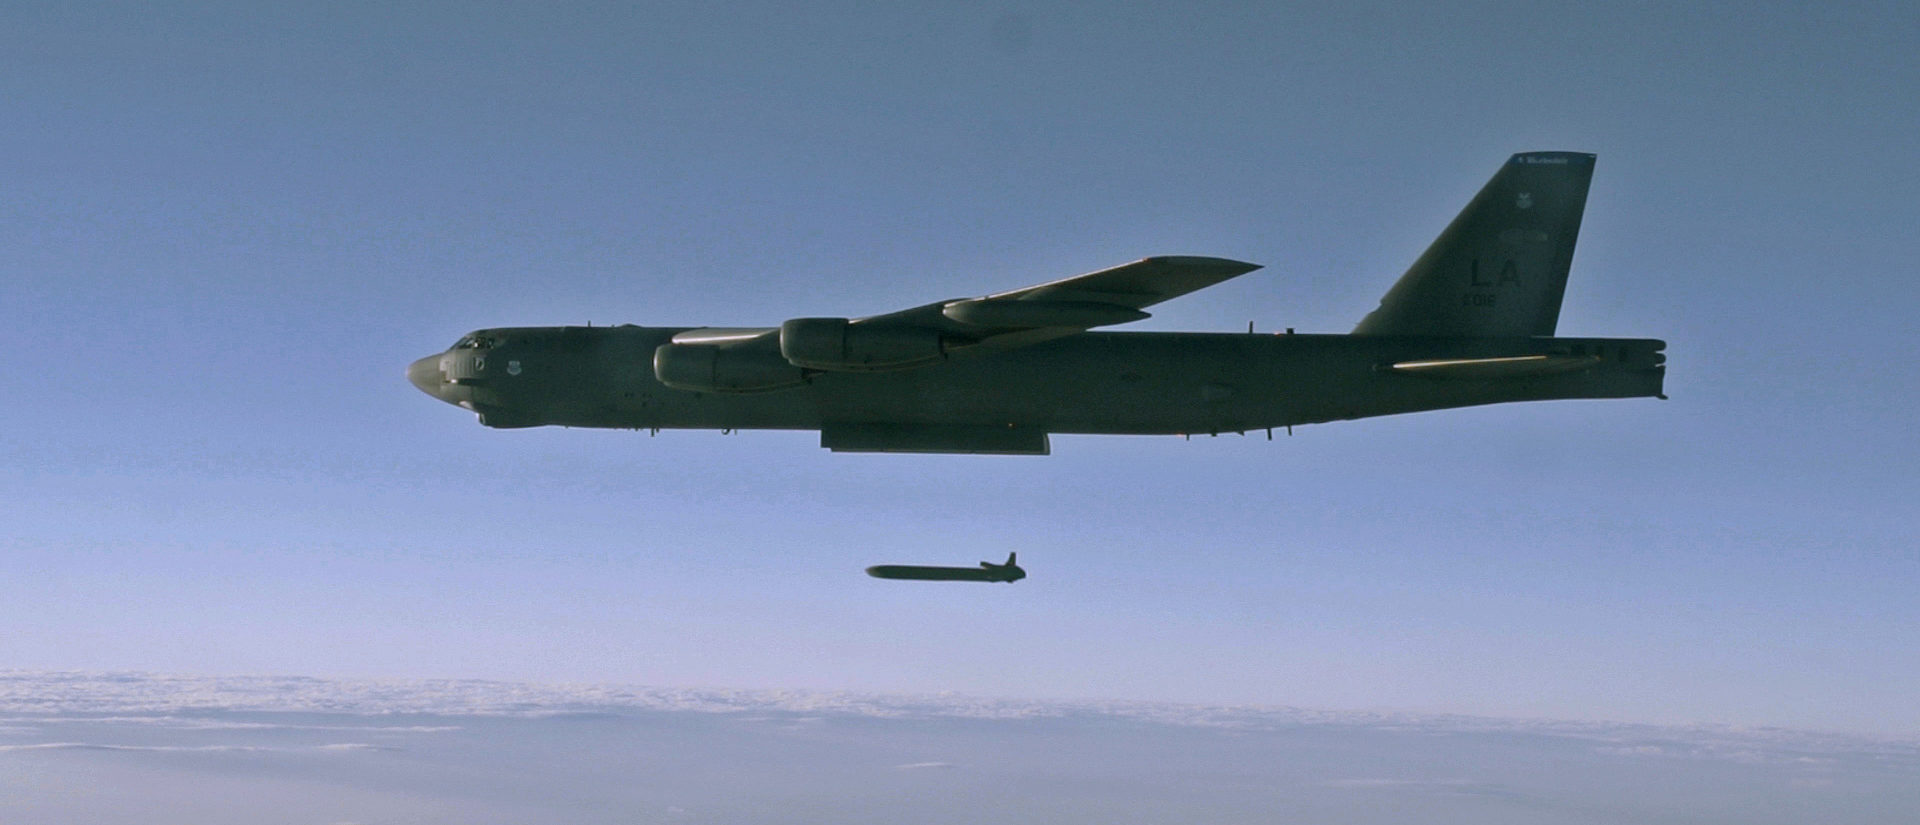 An unarmed AGM-86B Air-Launched Cruise Missile is released from a B-52H Stratofortress over the Utah Test and Training Range during a Nuclear Weapons System Evaluation Program sortie, 80 miles west of Salt Lake City, Utah, September 22, 2014.  Air Force/Staff Sgt. Roidan Carlson/Handout via REUTERS